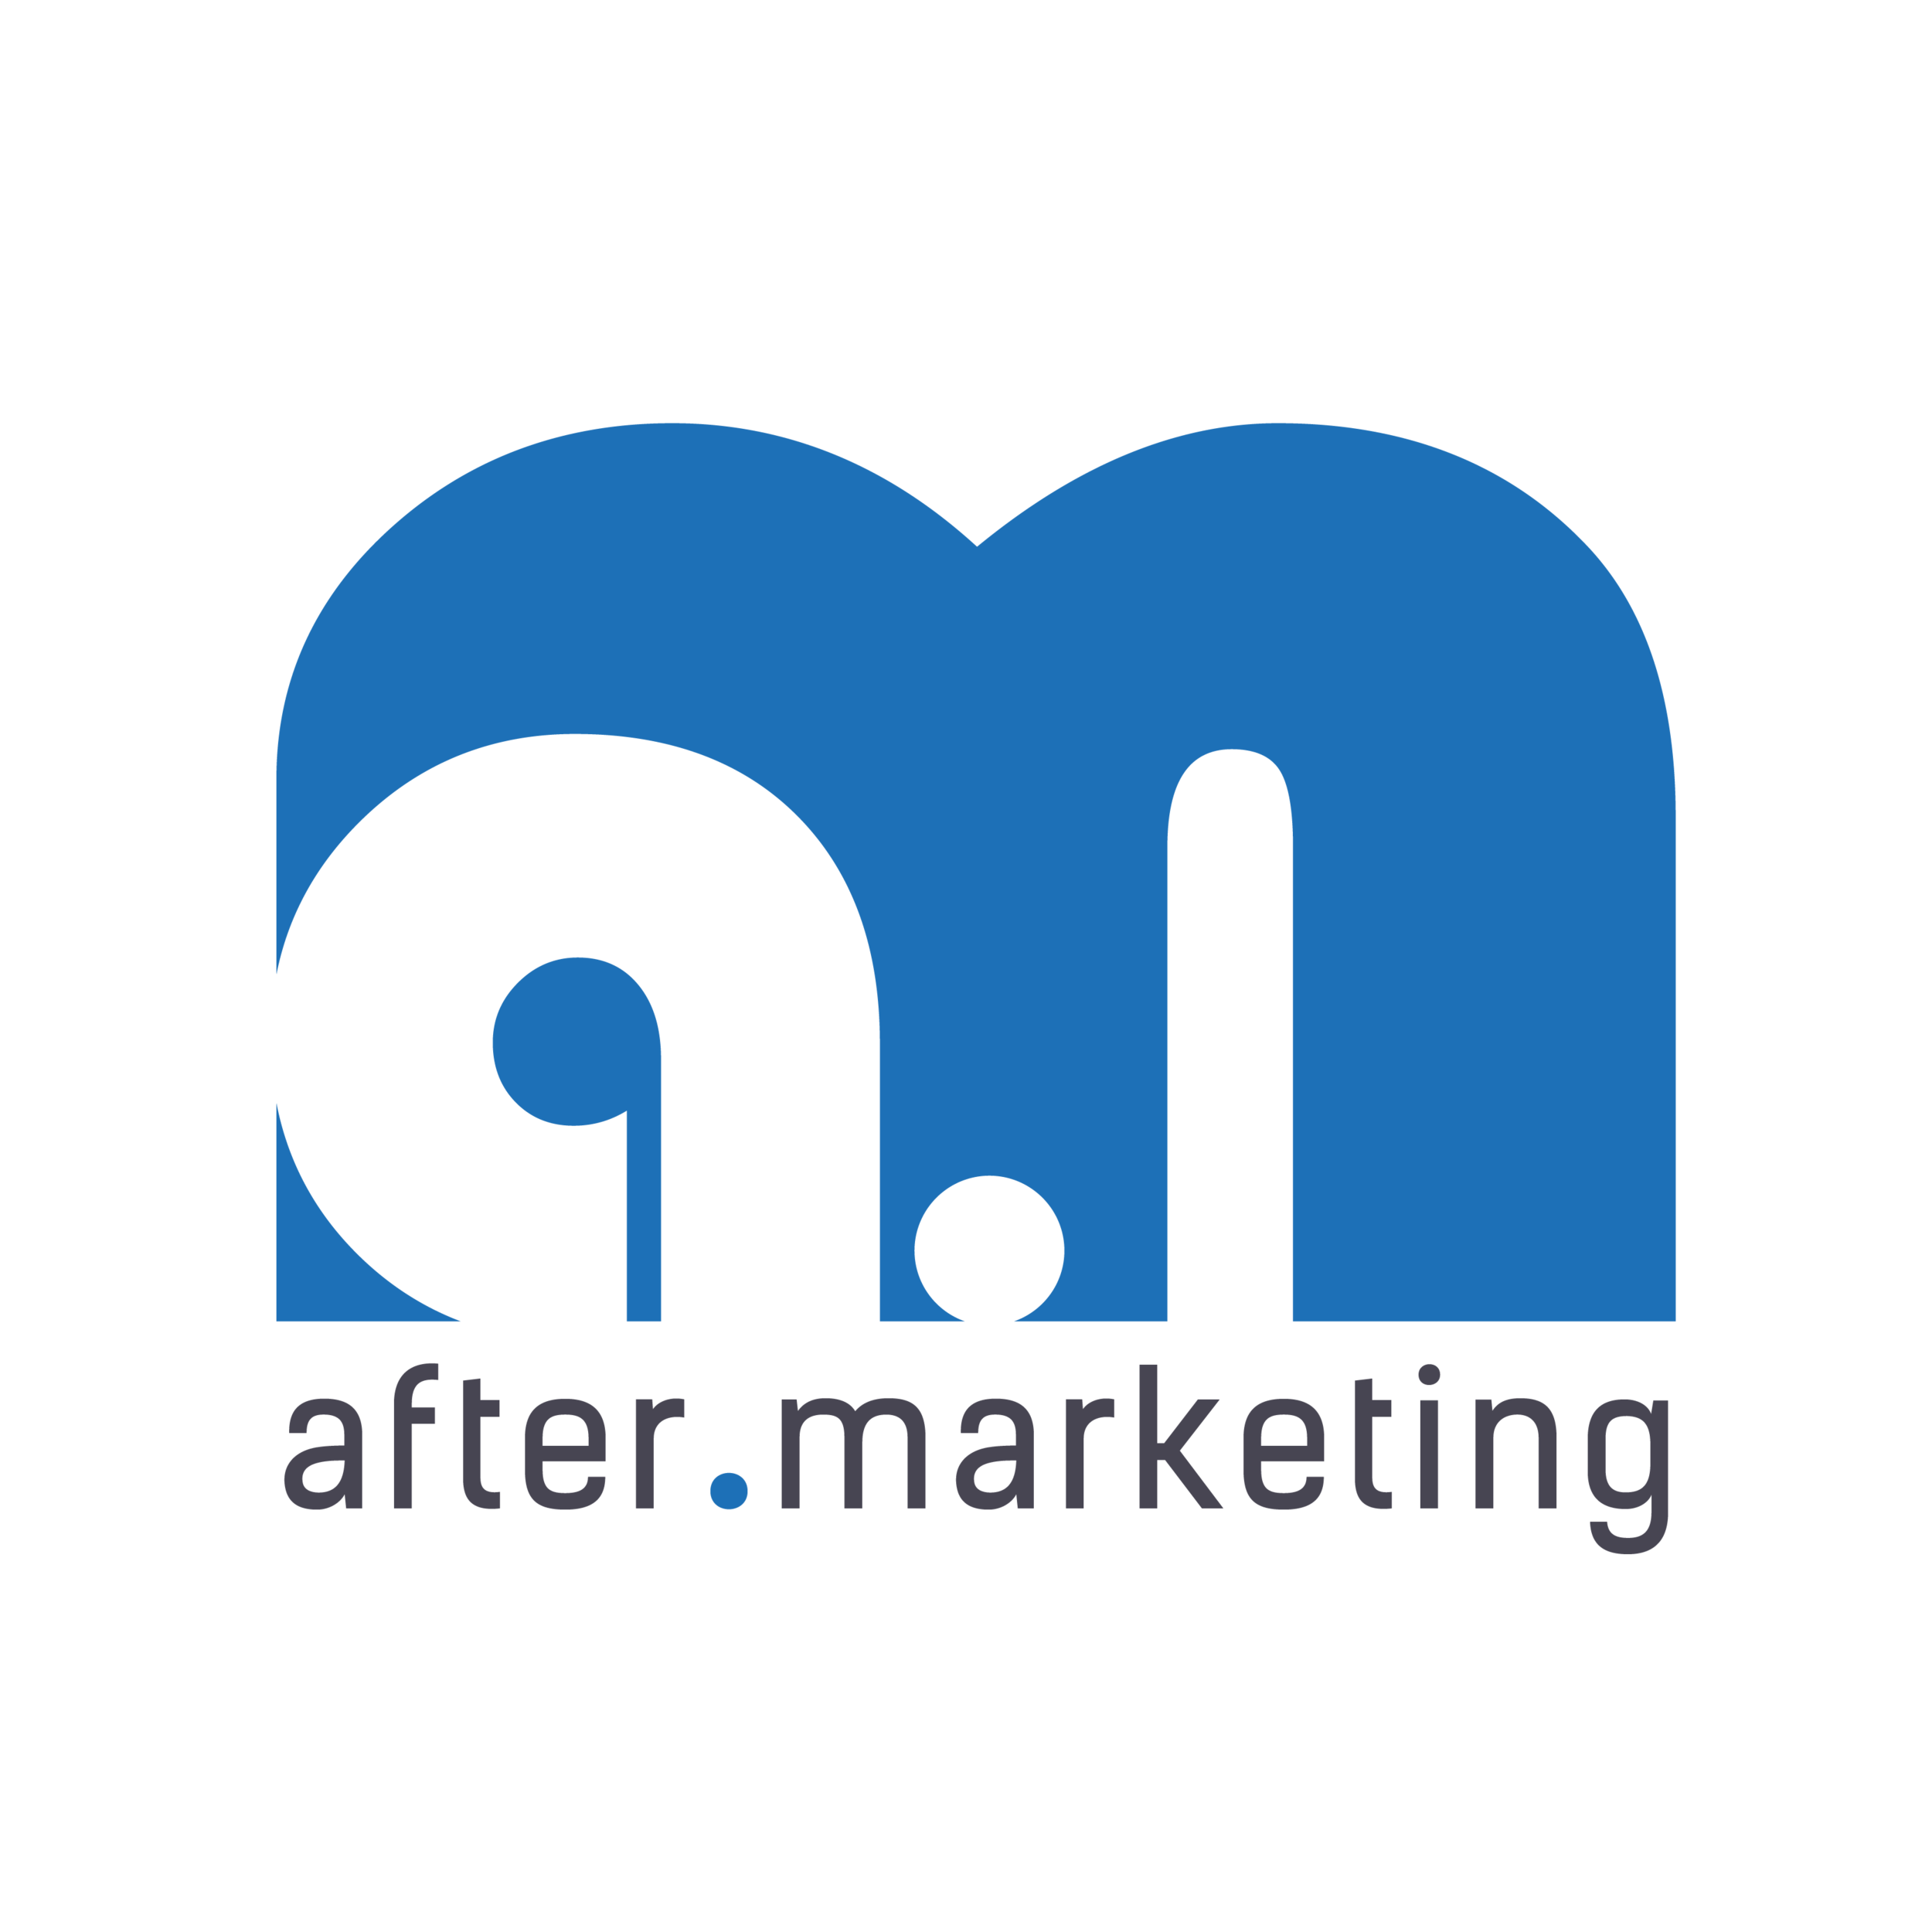 after.marketing offer a full variety of marketing solutions including; Web design, advertising, graphic design, PR and social media management.  after.marketing are sponsoring the book with marketing support from branding, designing the website, and social media content - Bringing the brand of The Ironbridge Ogre to life!   w  ww.after.marketing